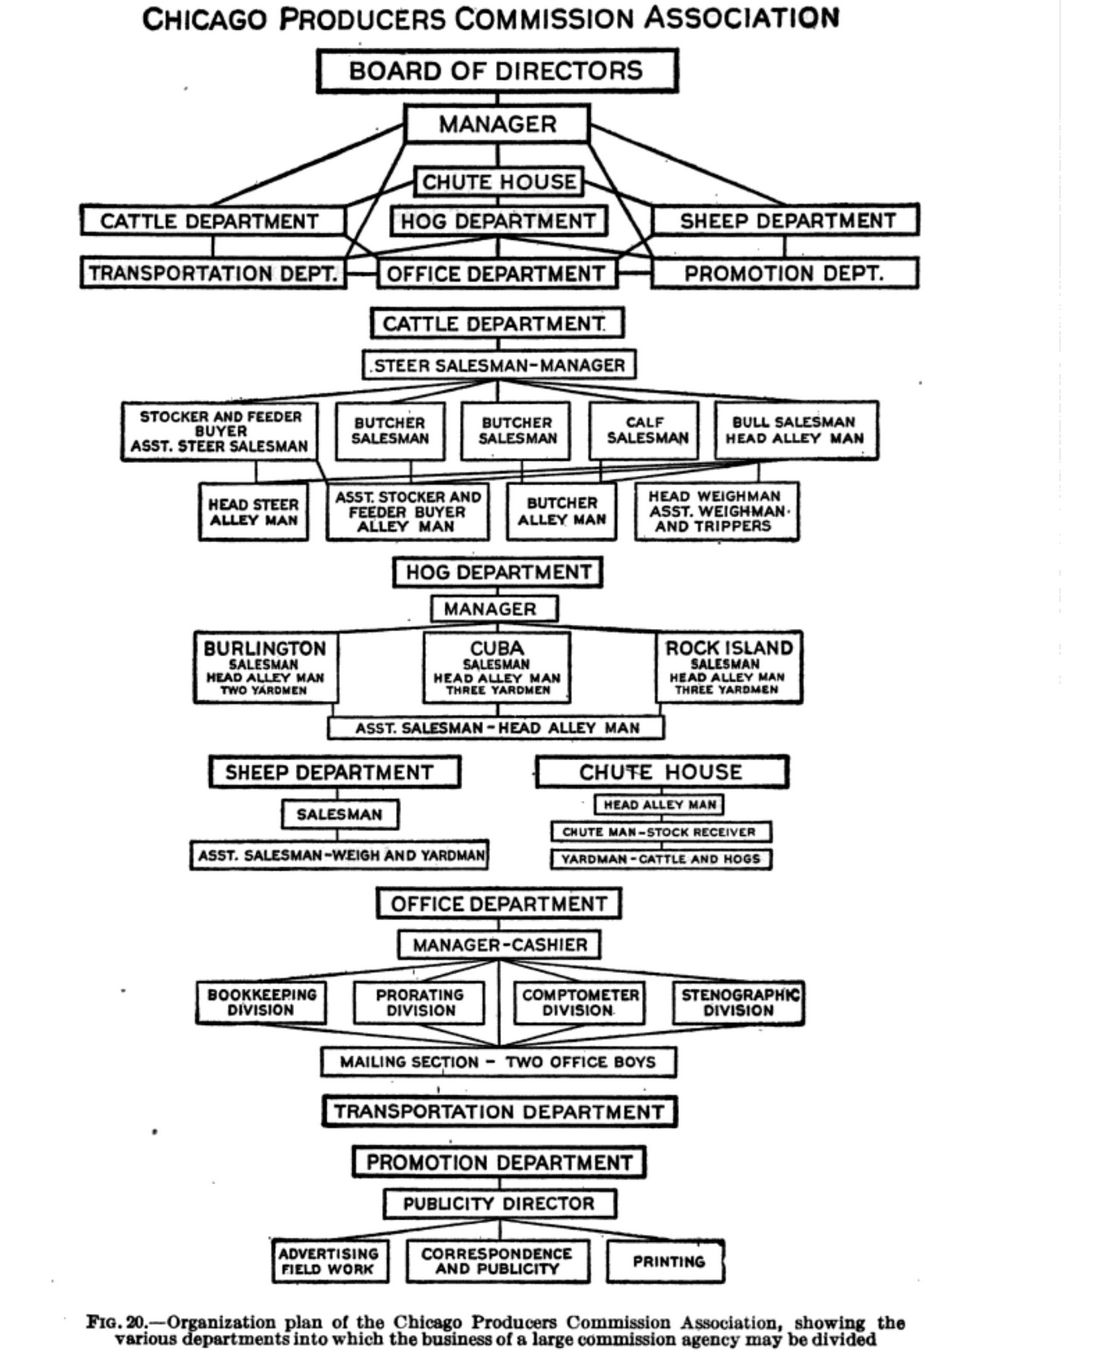 Board Of Directors Organizational Chart Template: Plan of Organization for National Livestock Producers ,Chart